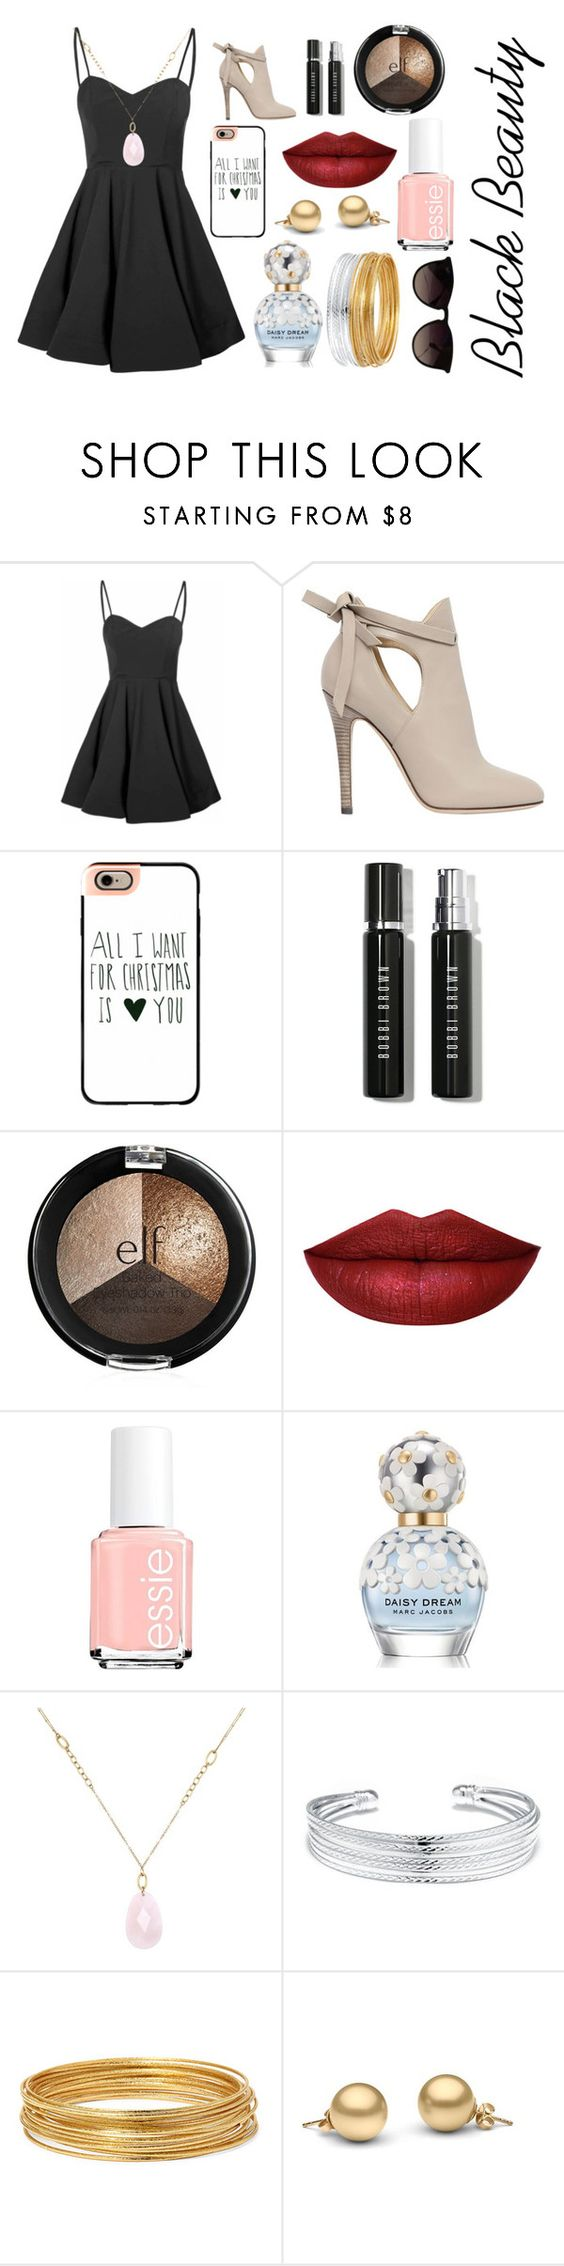 """Black Beauty"" by emilyh0905 ❤ liked on Polyvore featuring Glamorous, Jimmy Choo, Casetify, Bobbi Brown Cosmetics, Essie, Marc Jacobs, White House Black Market, Belk Silverworks, Bold Elements and Ray-Ban"